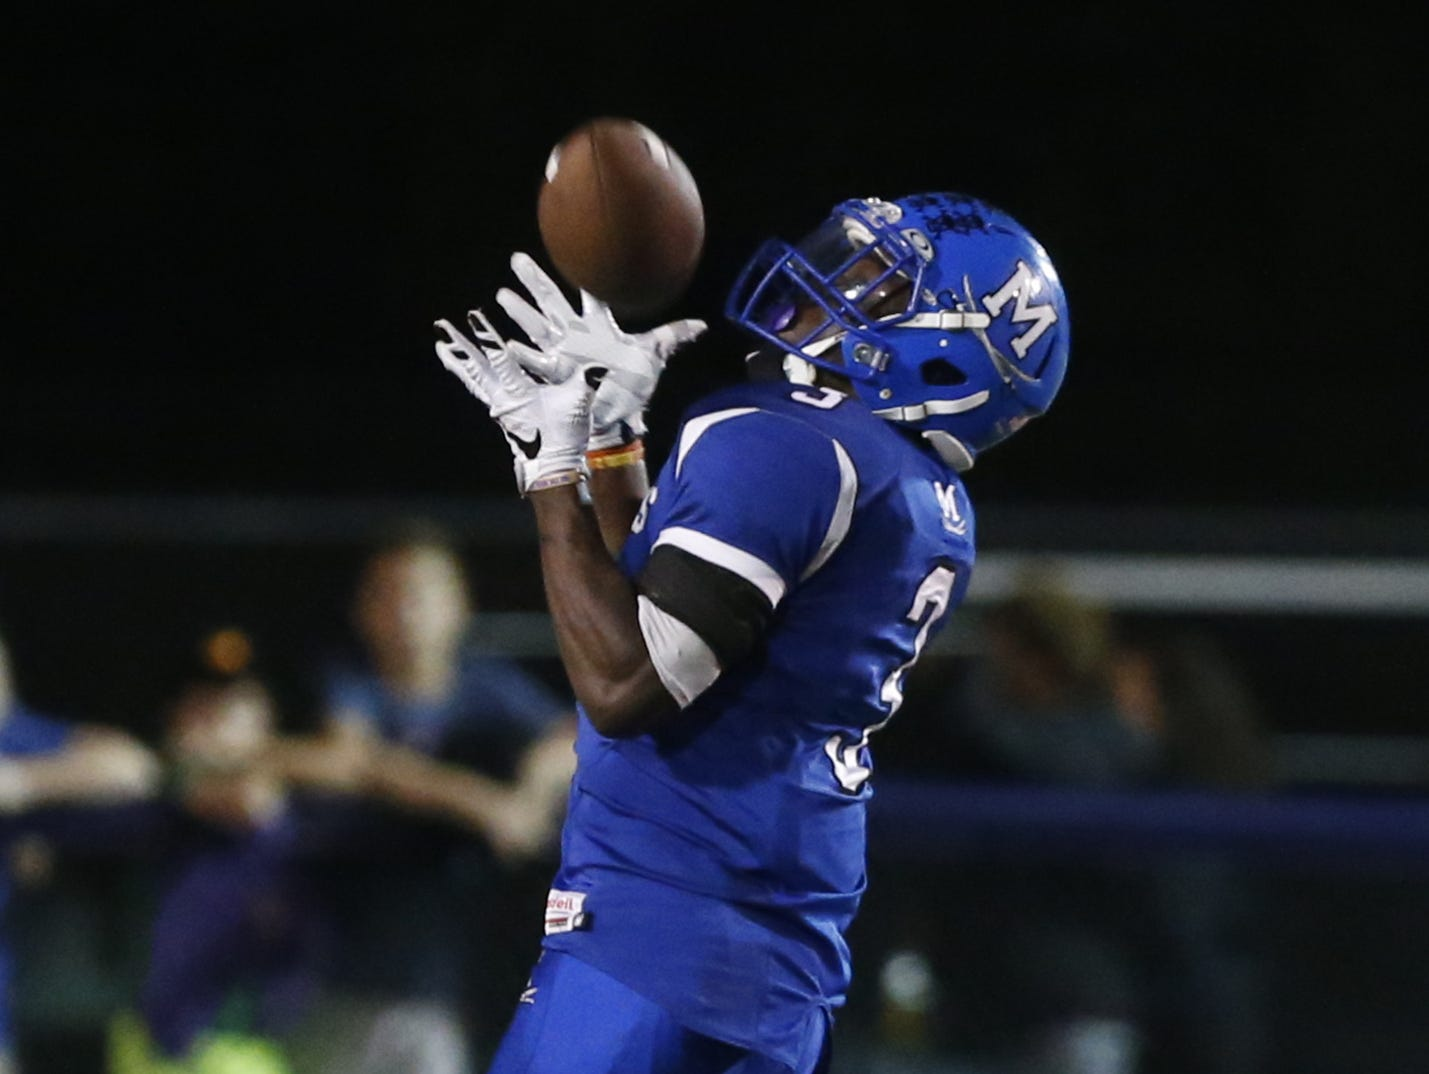 Middletown's Kedrick Whitehead is left alone as he collects a long pass in the first quarter at Cavalier Stadium Friday.